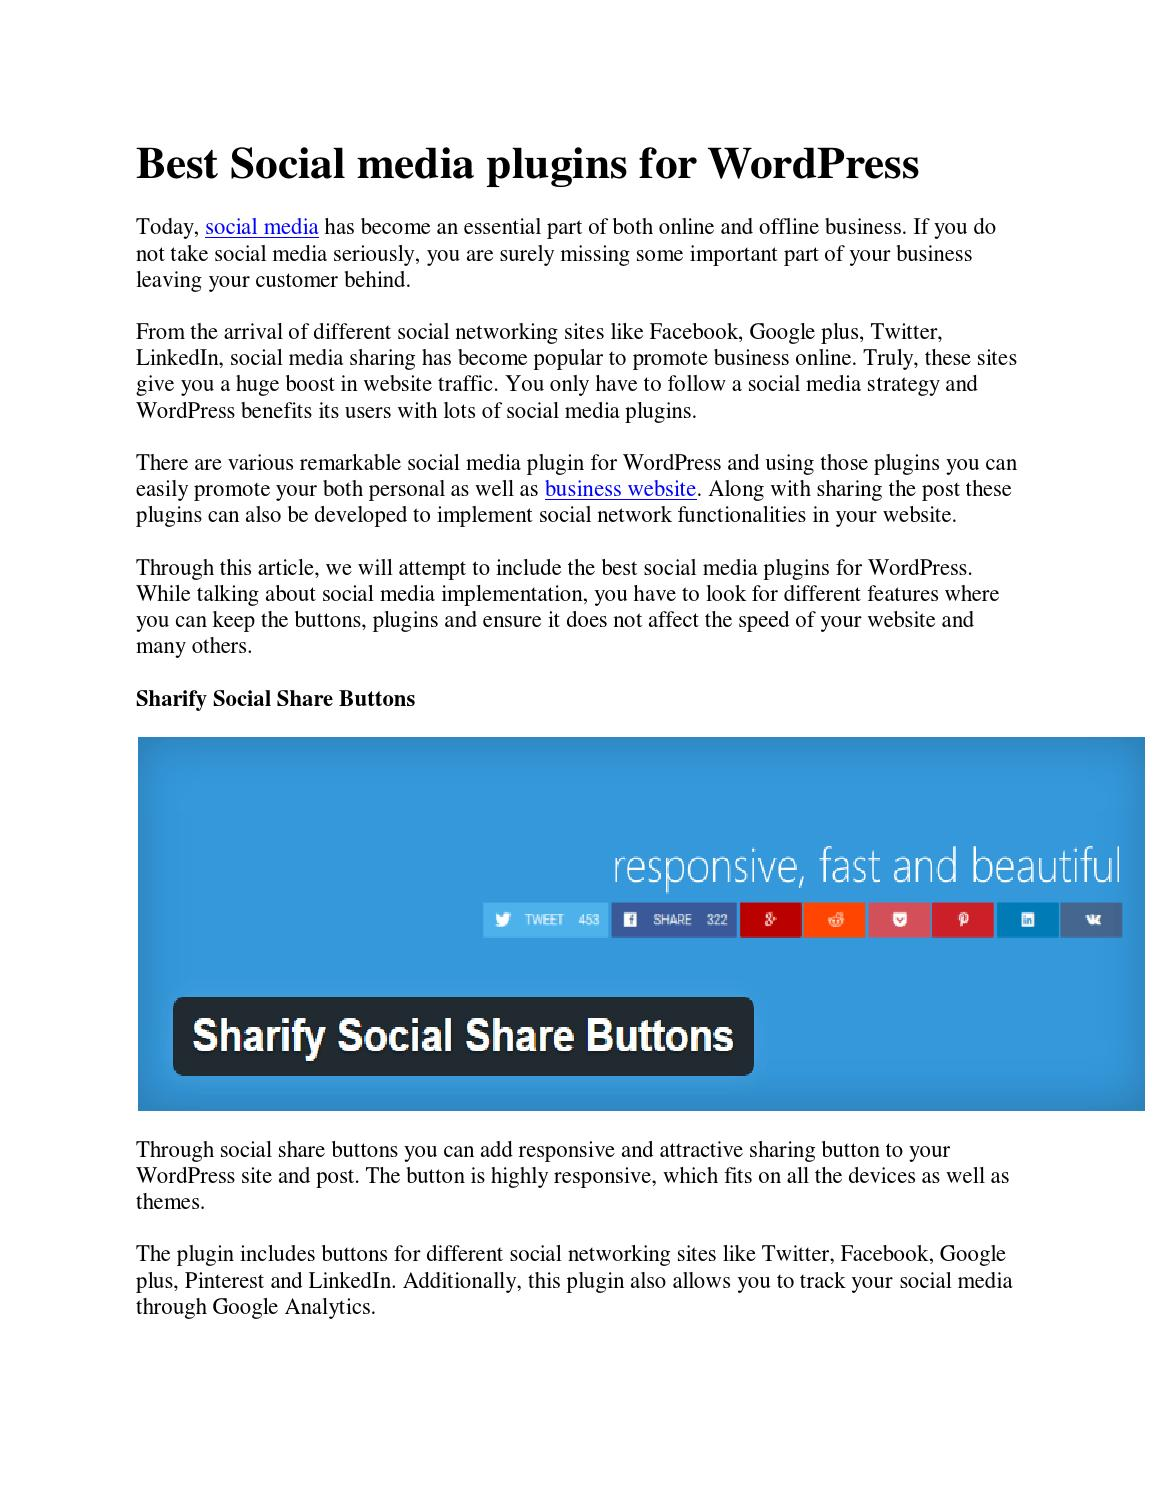 Best social media plugins for wordpress by Marshall - issuu